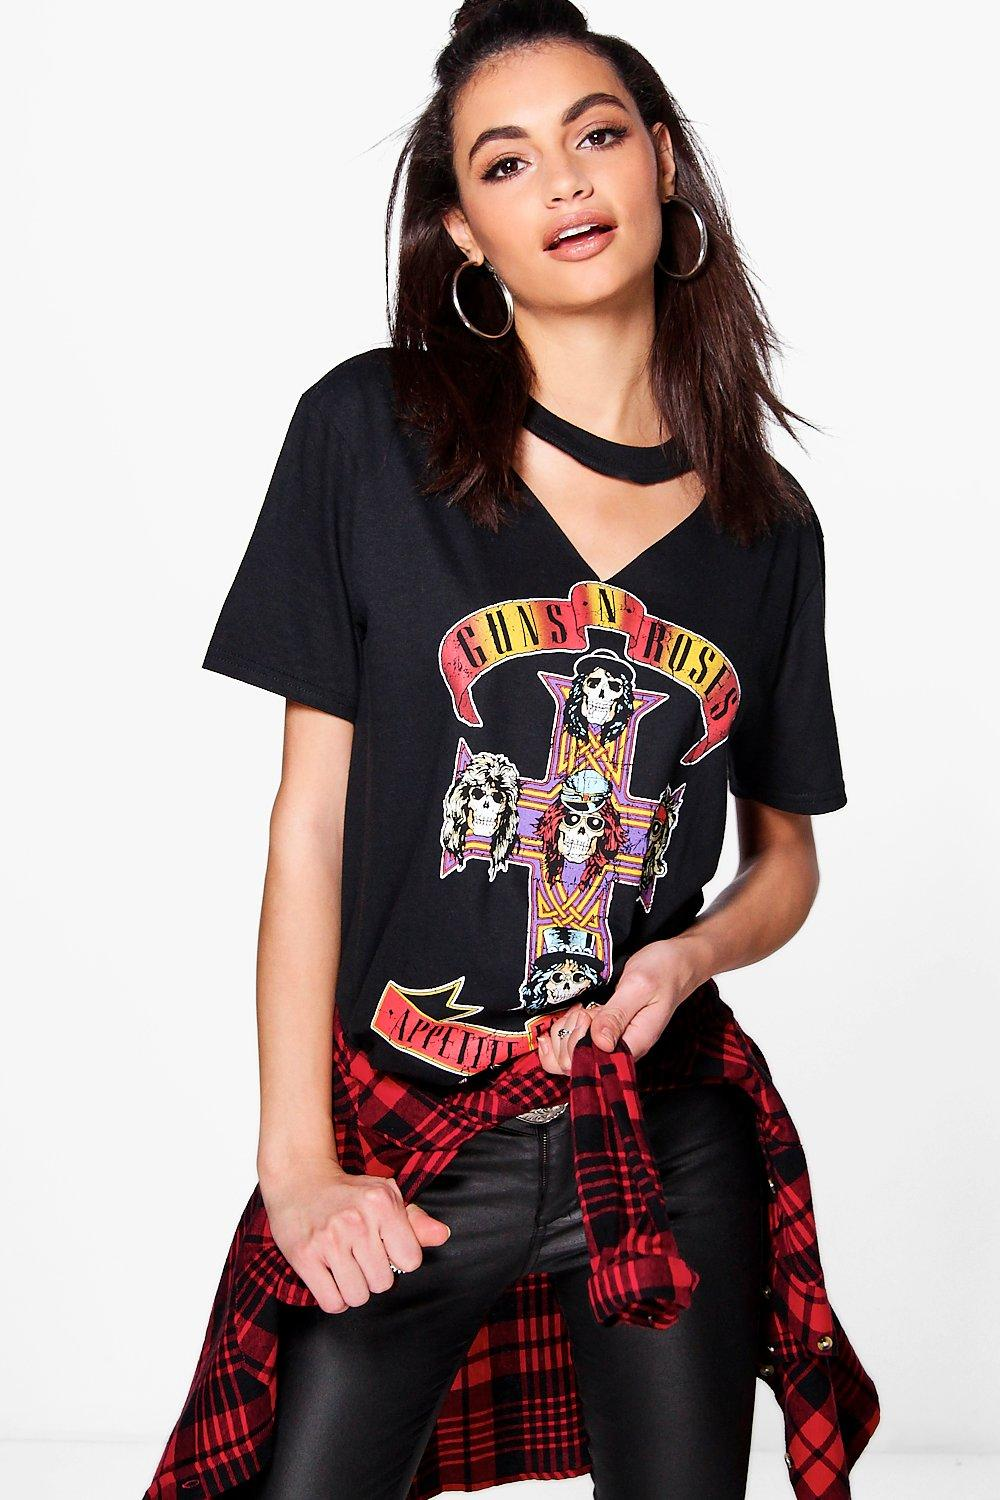 Official-Womens-Guns-n-Roses-T-Shirt-Tee-Cut-Out-Neck-Appetite-for-Destruction thumbnail 17